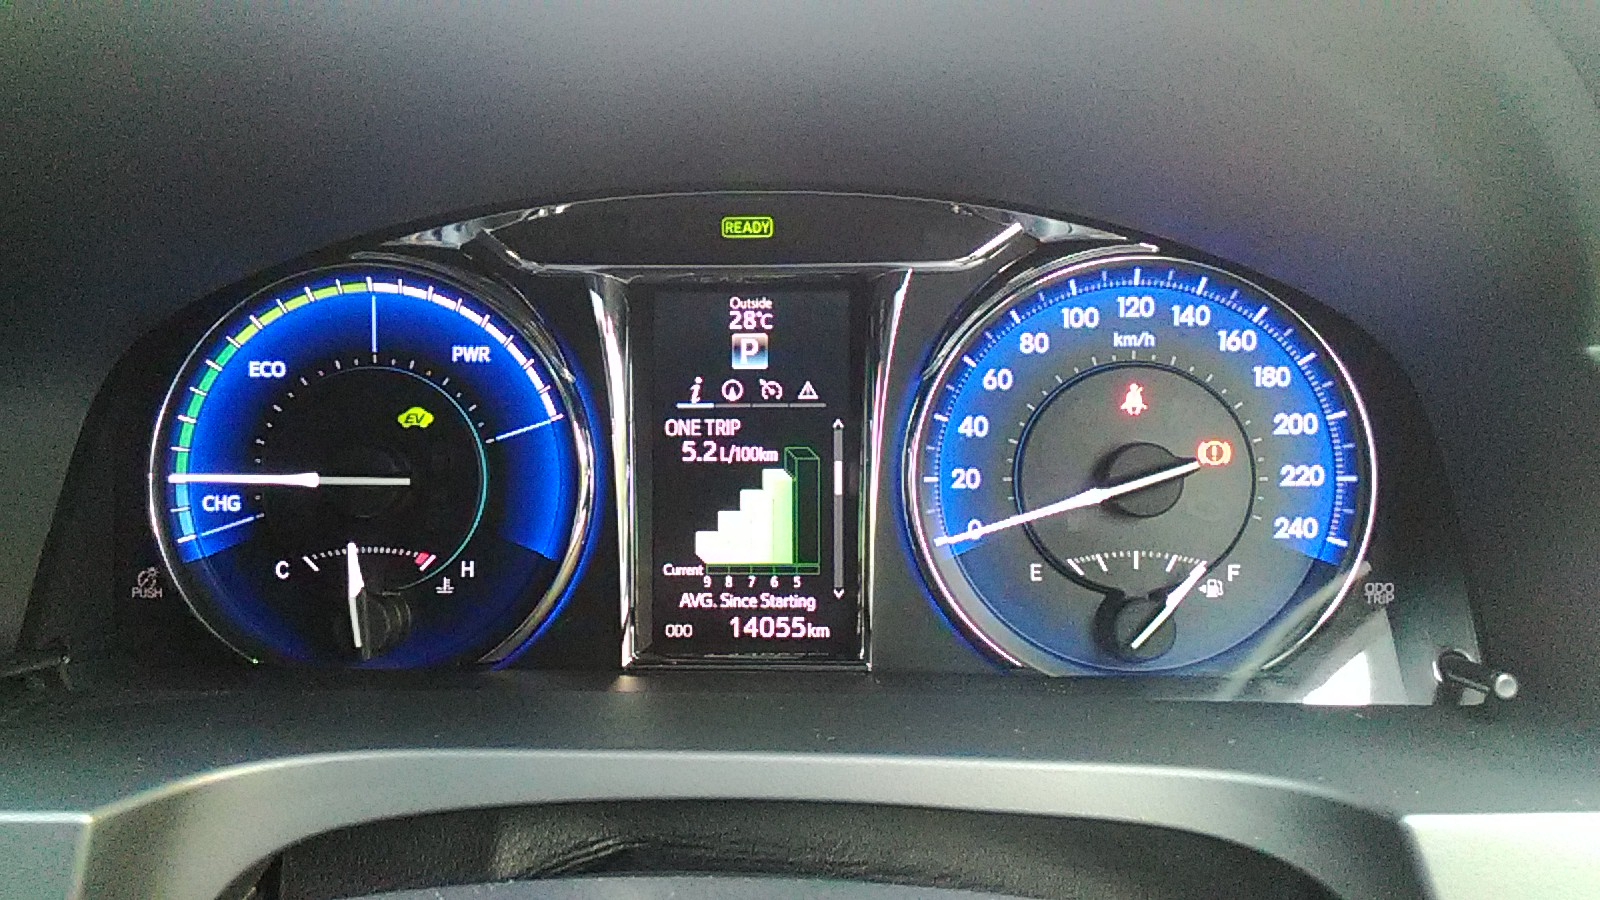 Toyota Camry Hybrid Fuel Consumption At 5 2 Litre Per 100 Kilometers